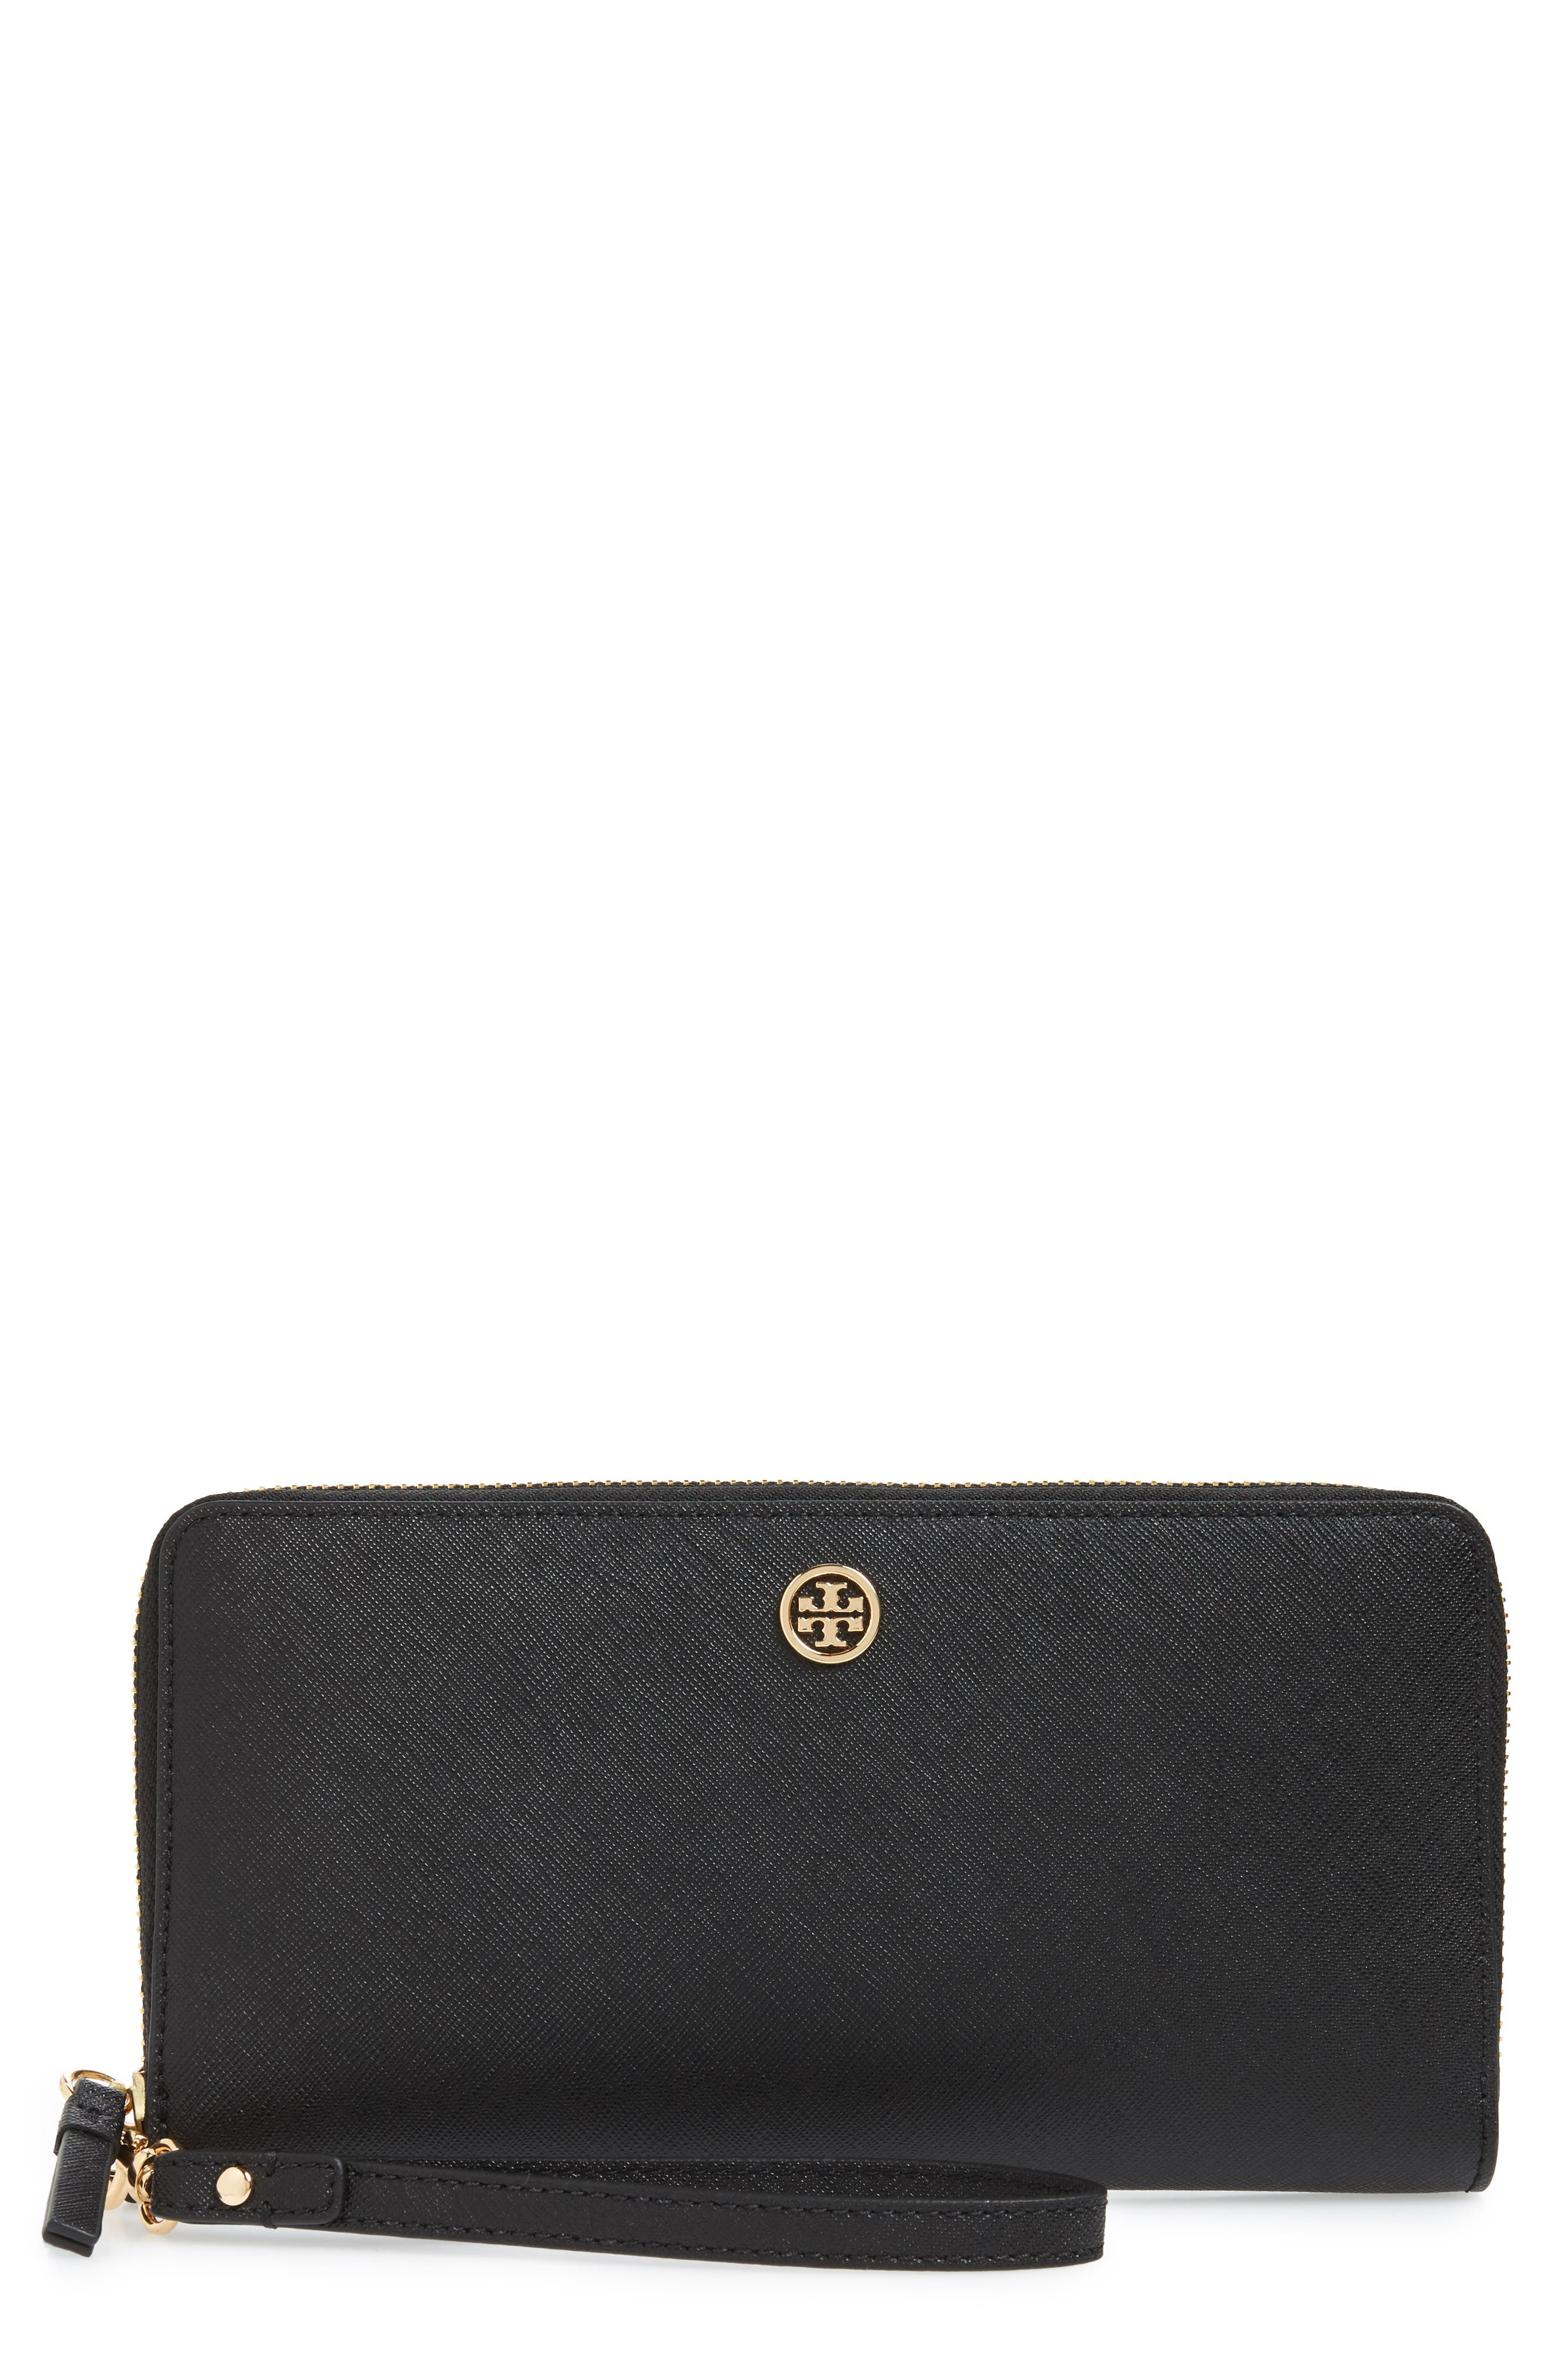 Robinson Leather Passport Continental Wallet,                         Main,                         color, Black / Royal Navy